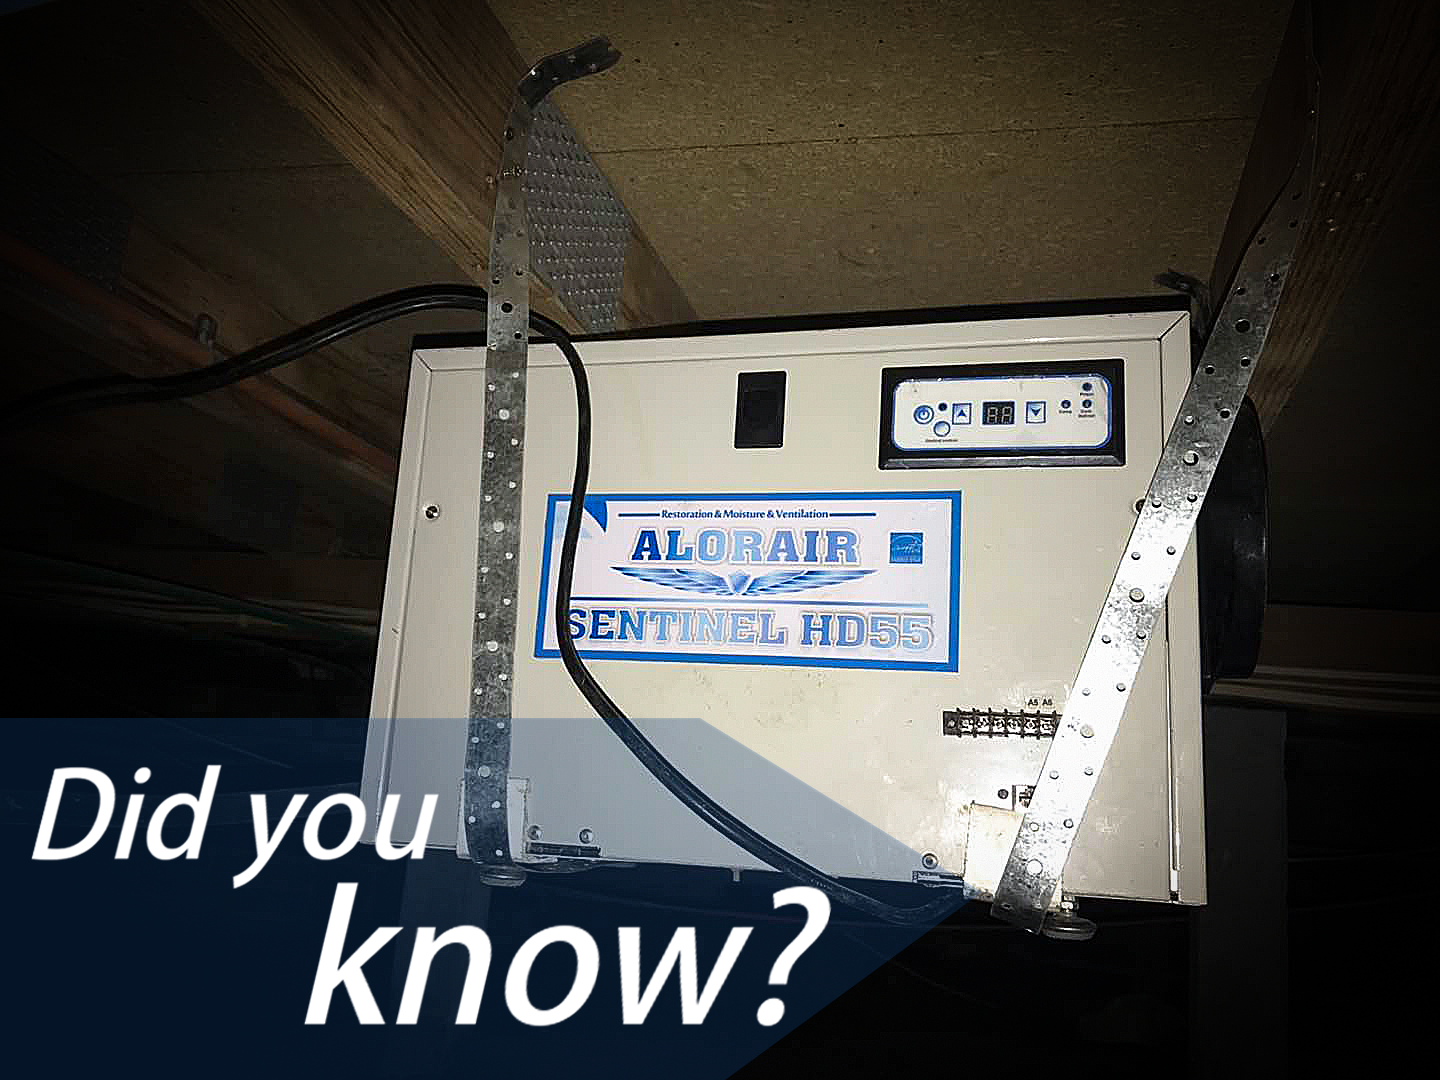 Using a dehumidifier in your crawlspace can reduce the amount of moisture in the air. Mold does not grow well in dry areas. www.alorair.com thedryair.com #AlorairDehumidifier #waterdamagerestoration  #alltrades #builder #build #construction #construct #melbournebuilder #melbournecarpentry #houserepairs #buildingrepair #home #house #masterbuilders #waterdamage #waterdamagerepair #melbourne #melbournebuilders #buildersofinsta #property #waterremediation #dryingchamber #specialtycontractor